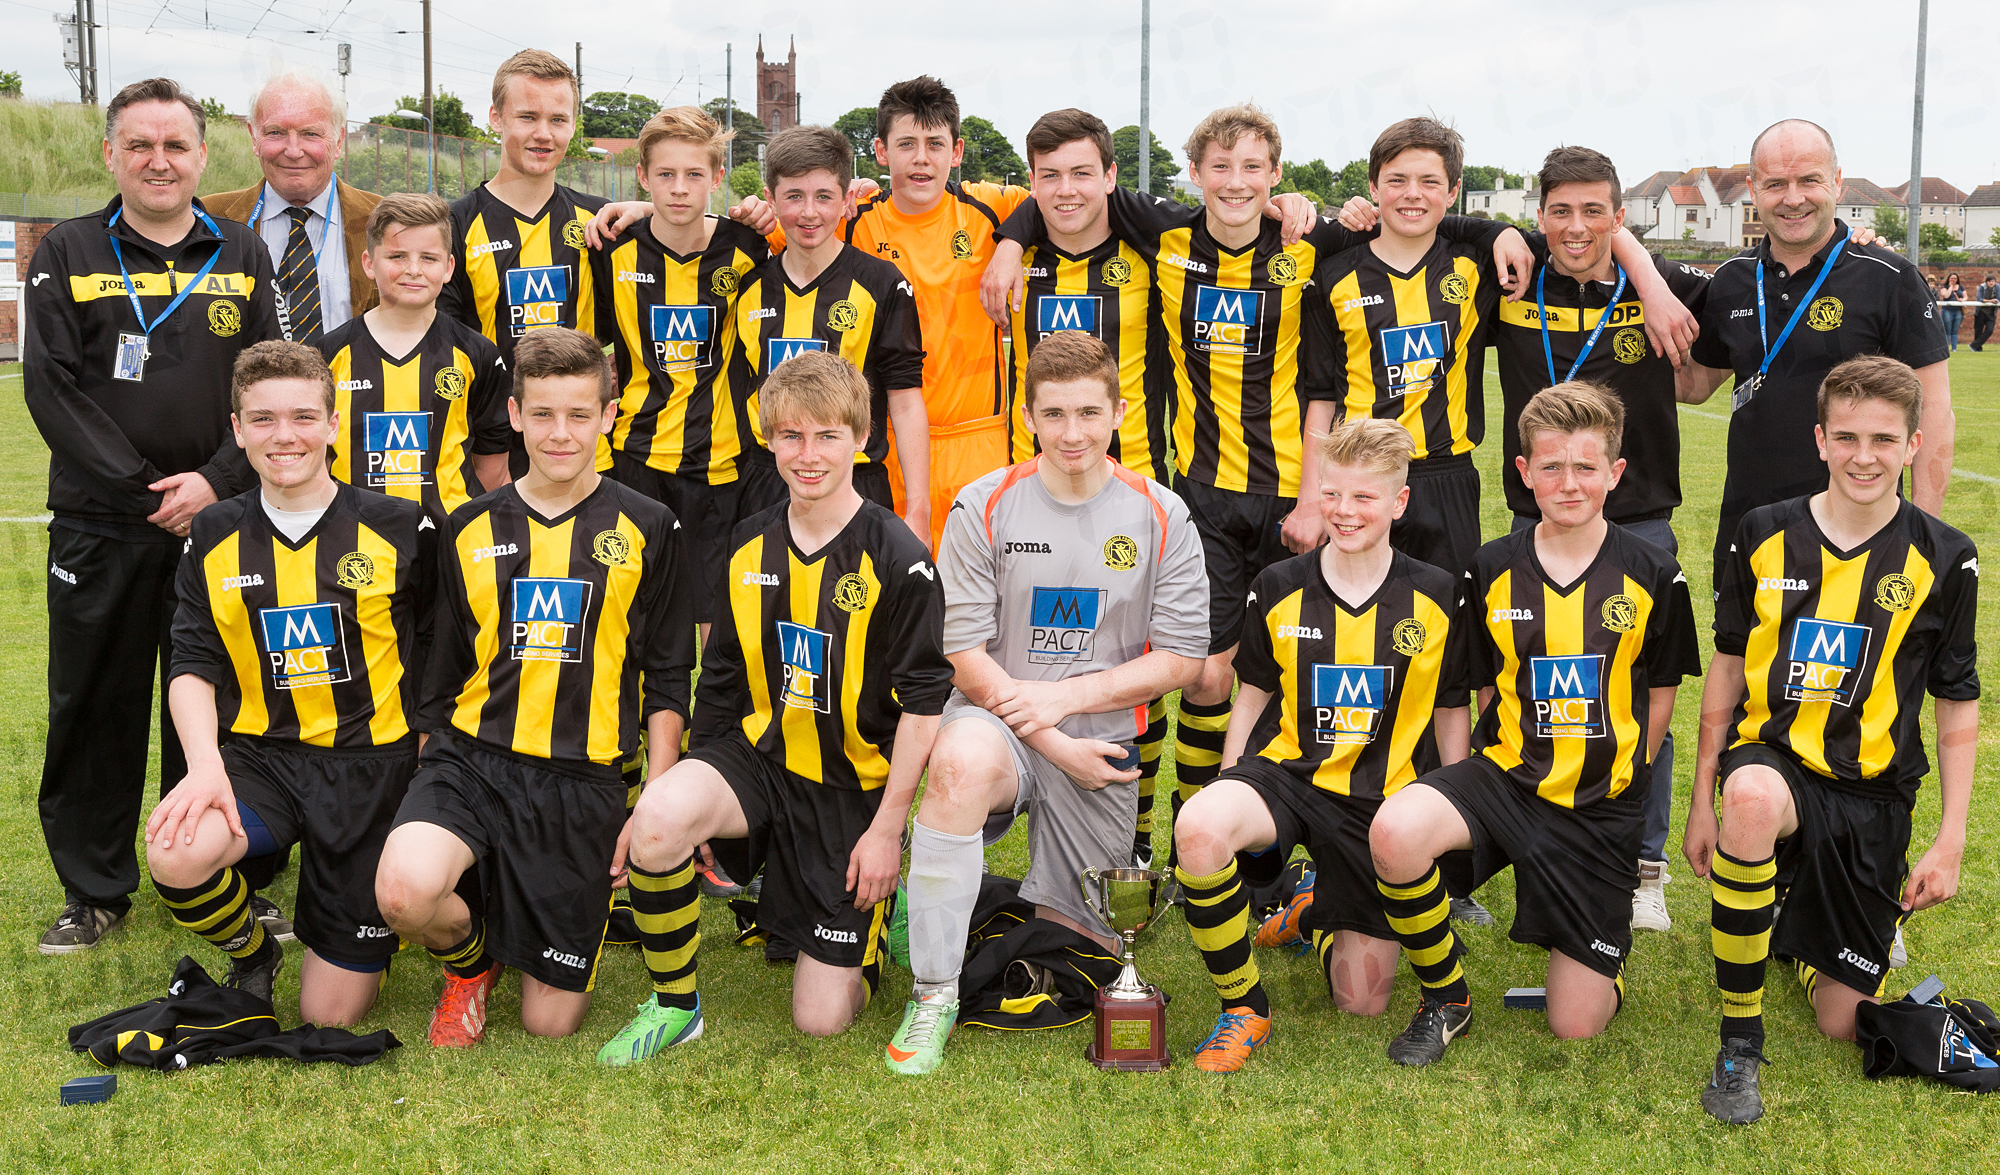 The winning team, Hutchison Vale, show off their trophy.